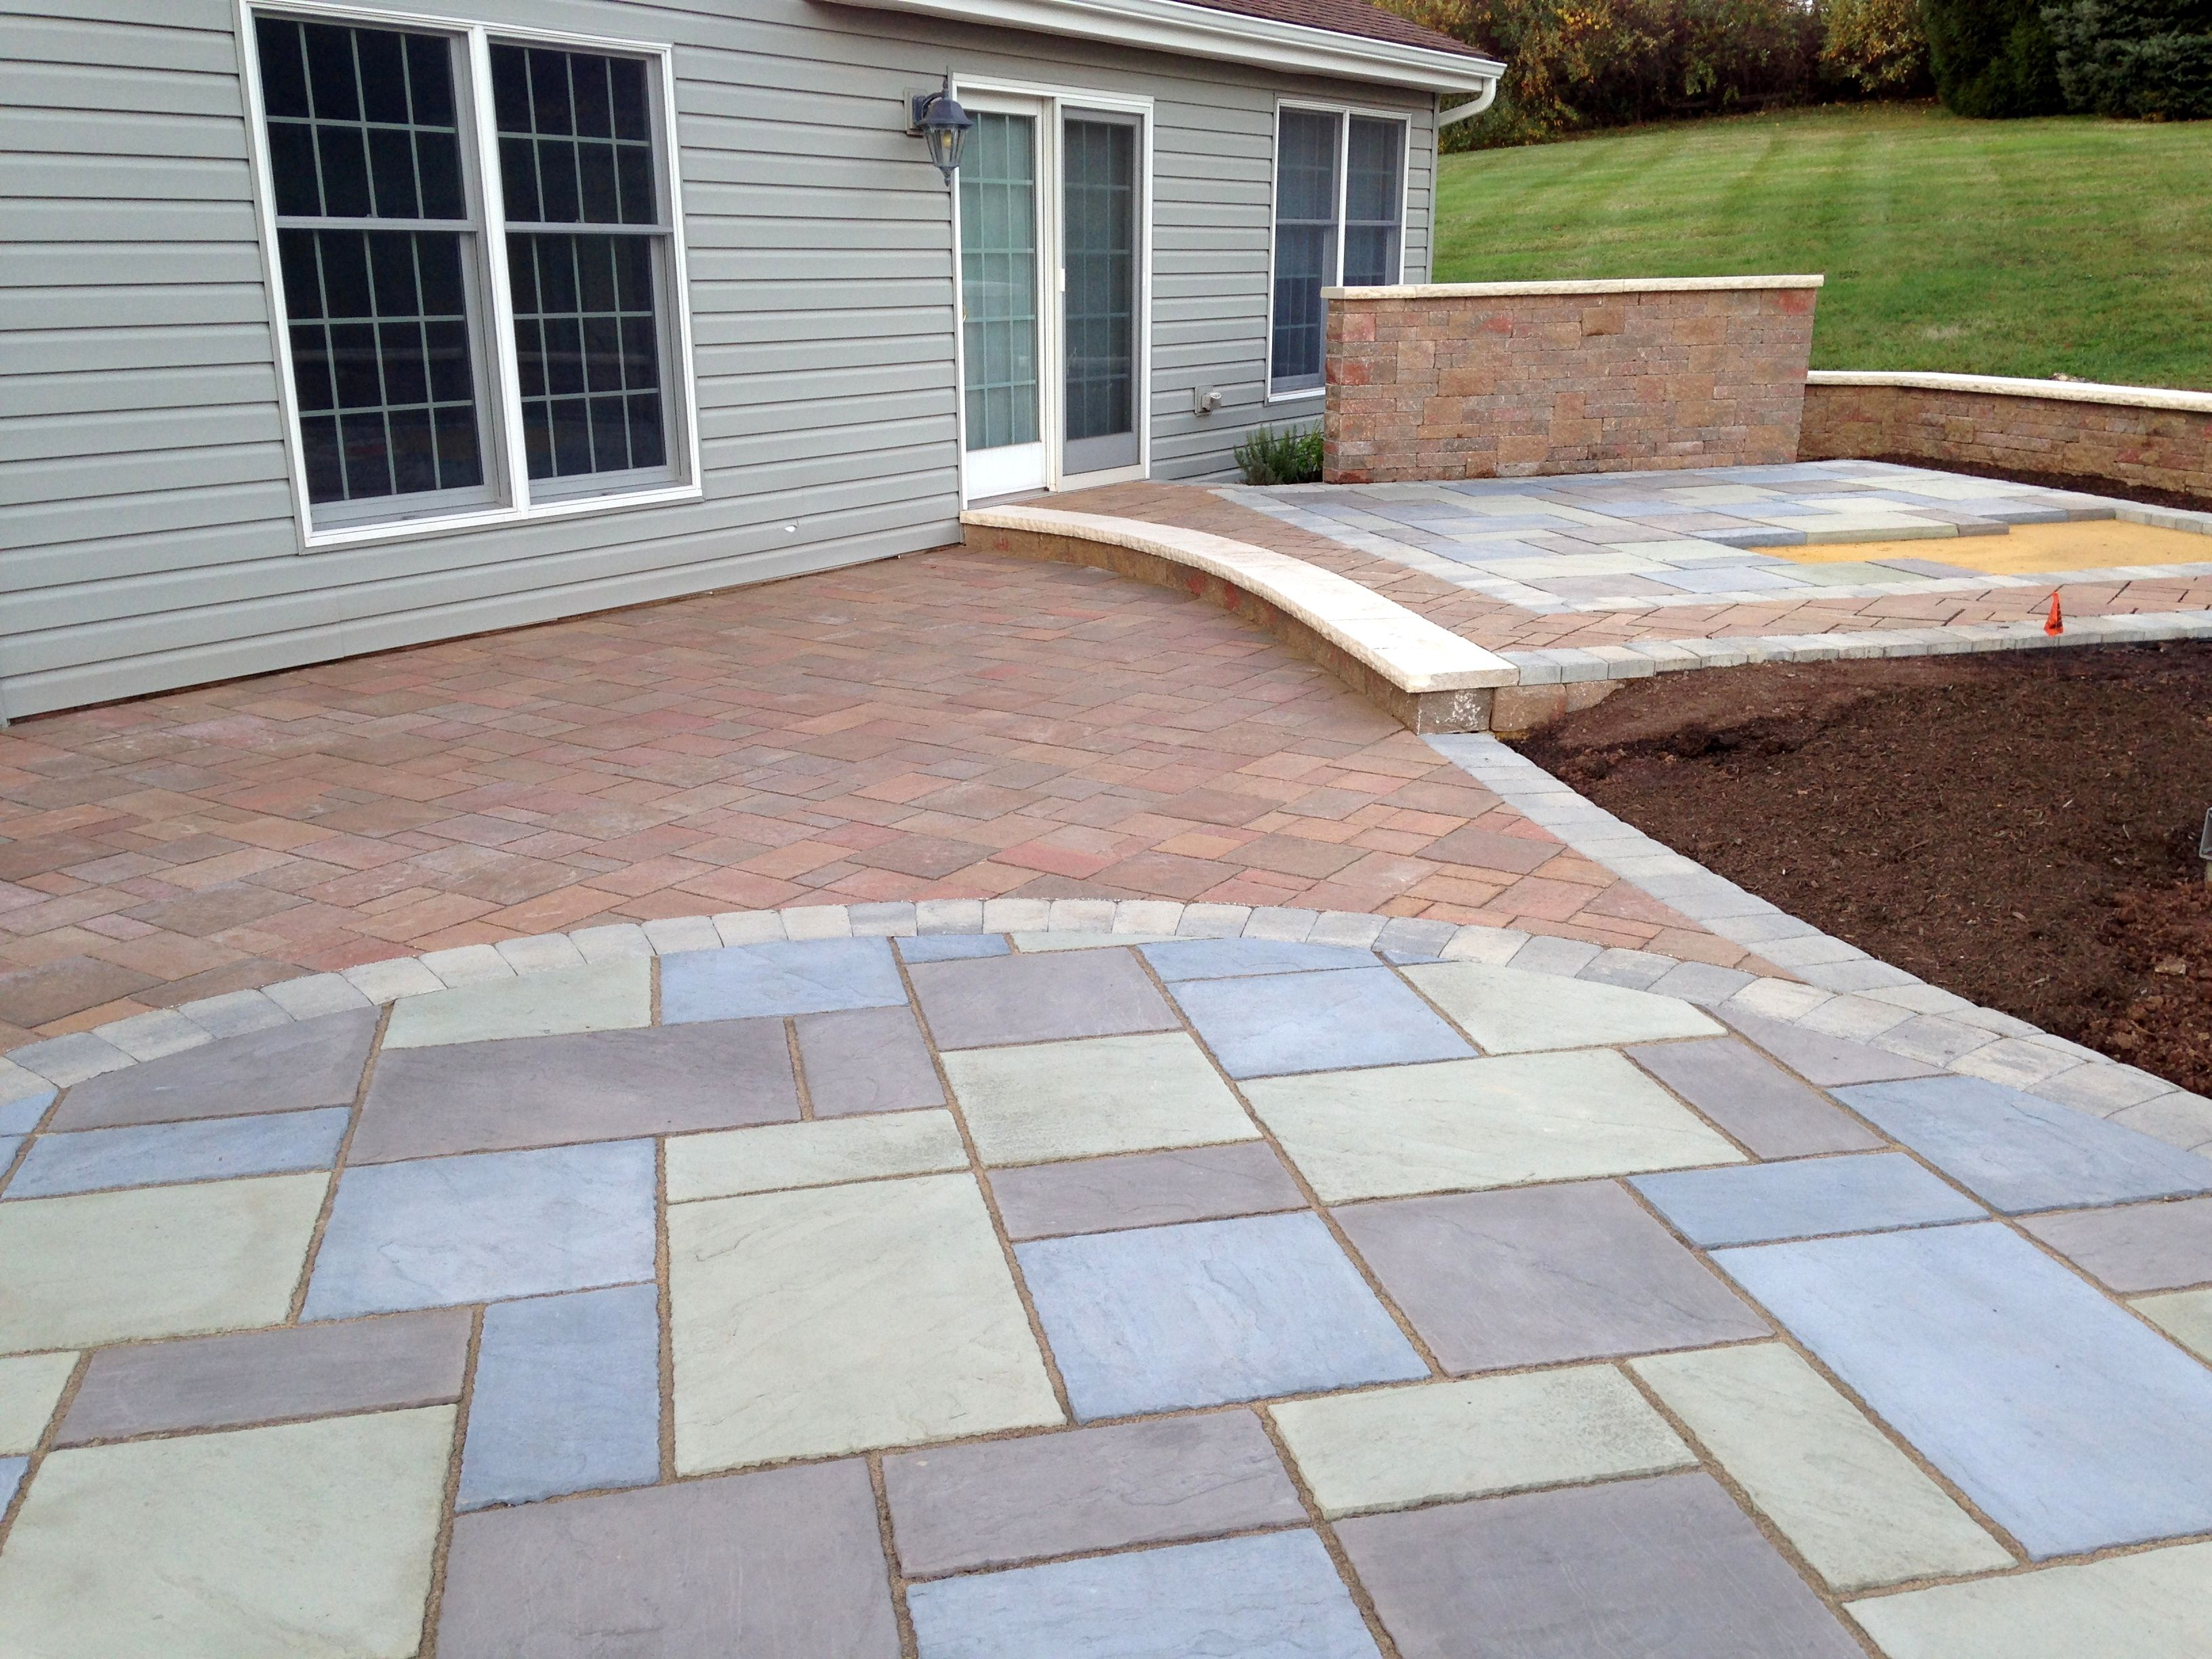 Work In Progress, Paver Patio By Premier Patios And Walks. Circular Paver